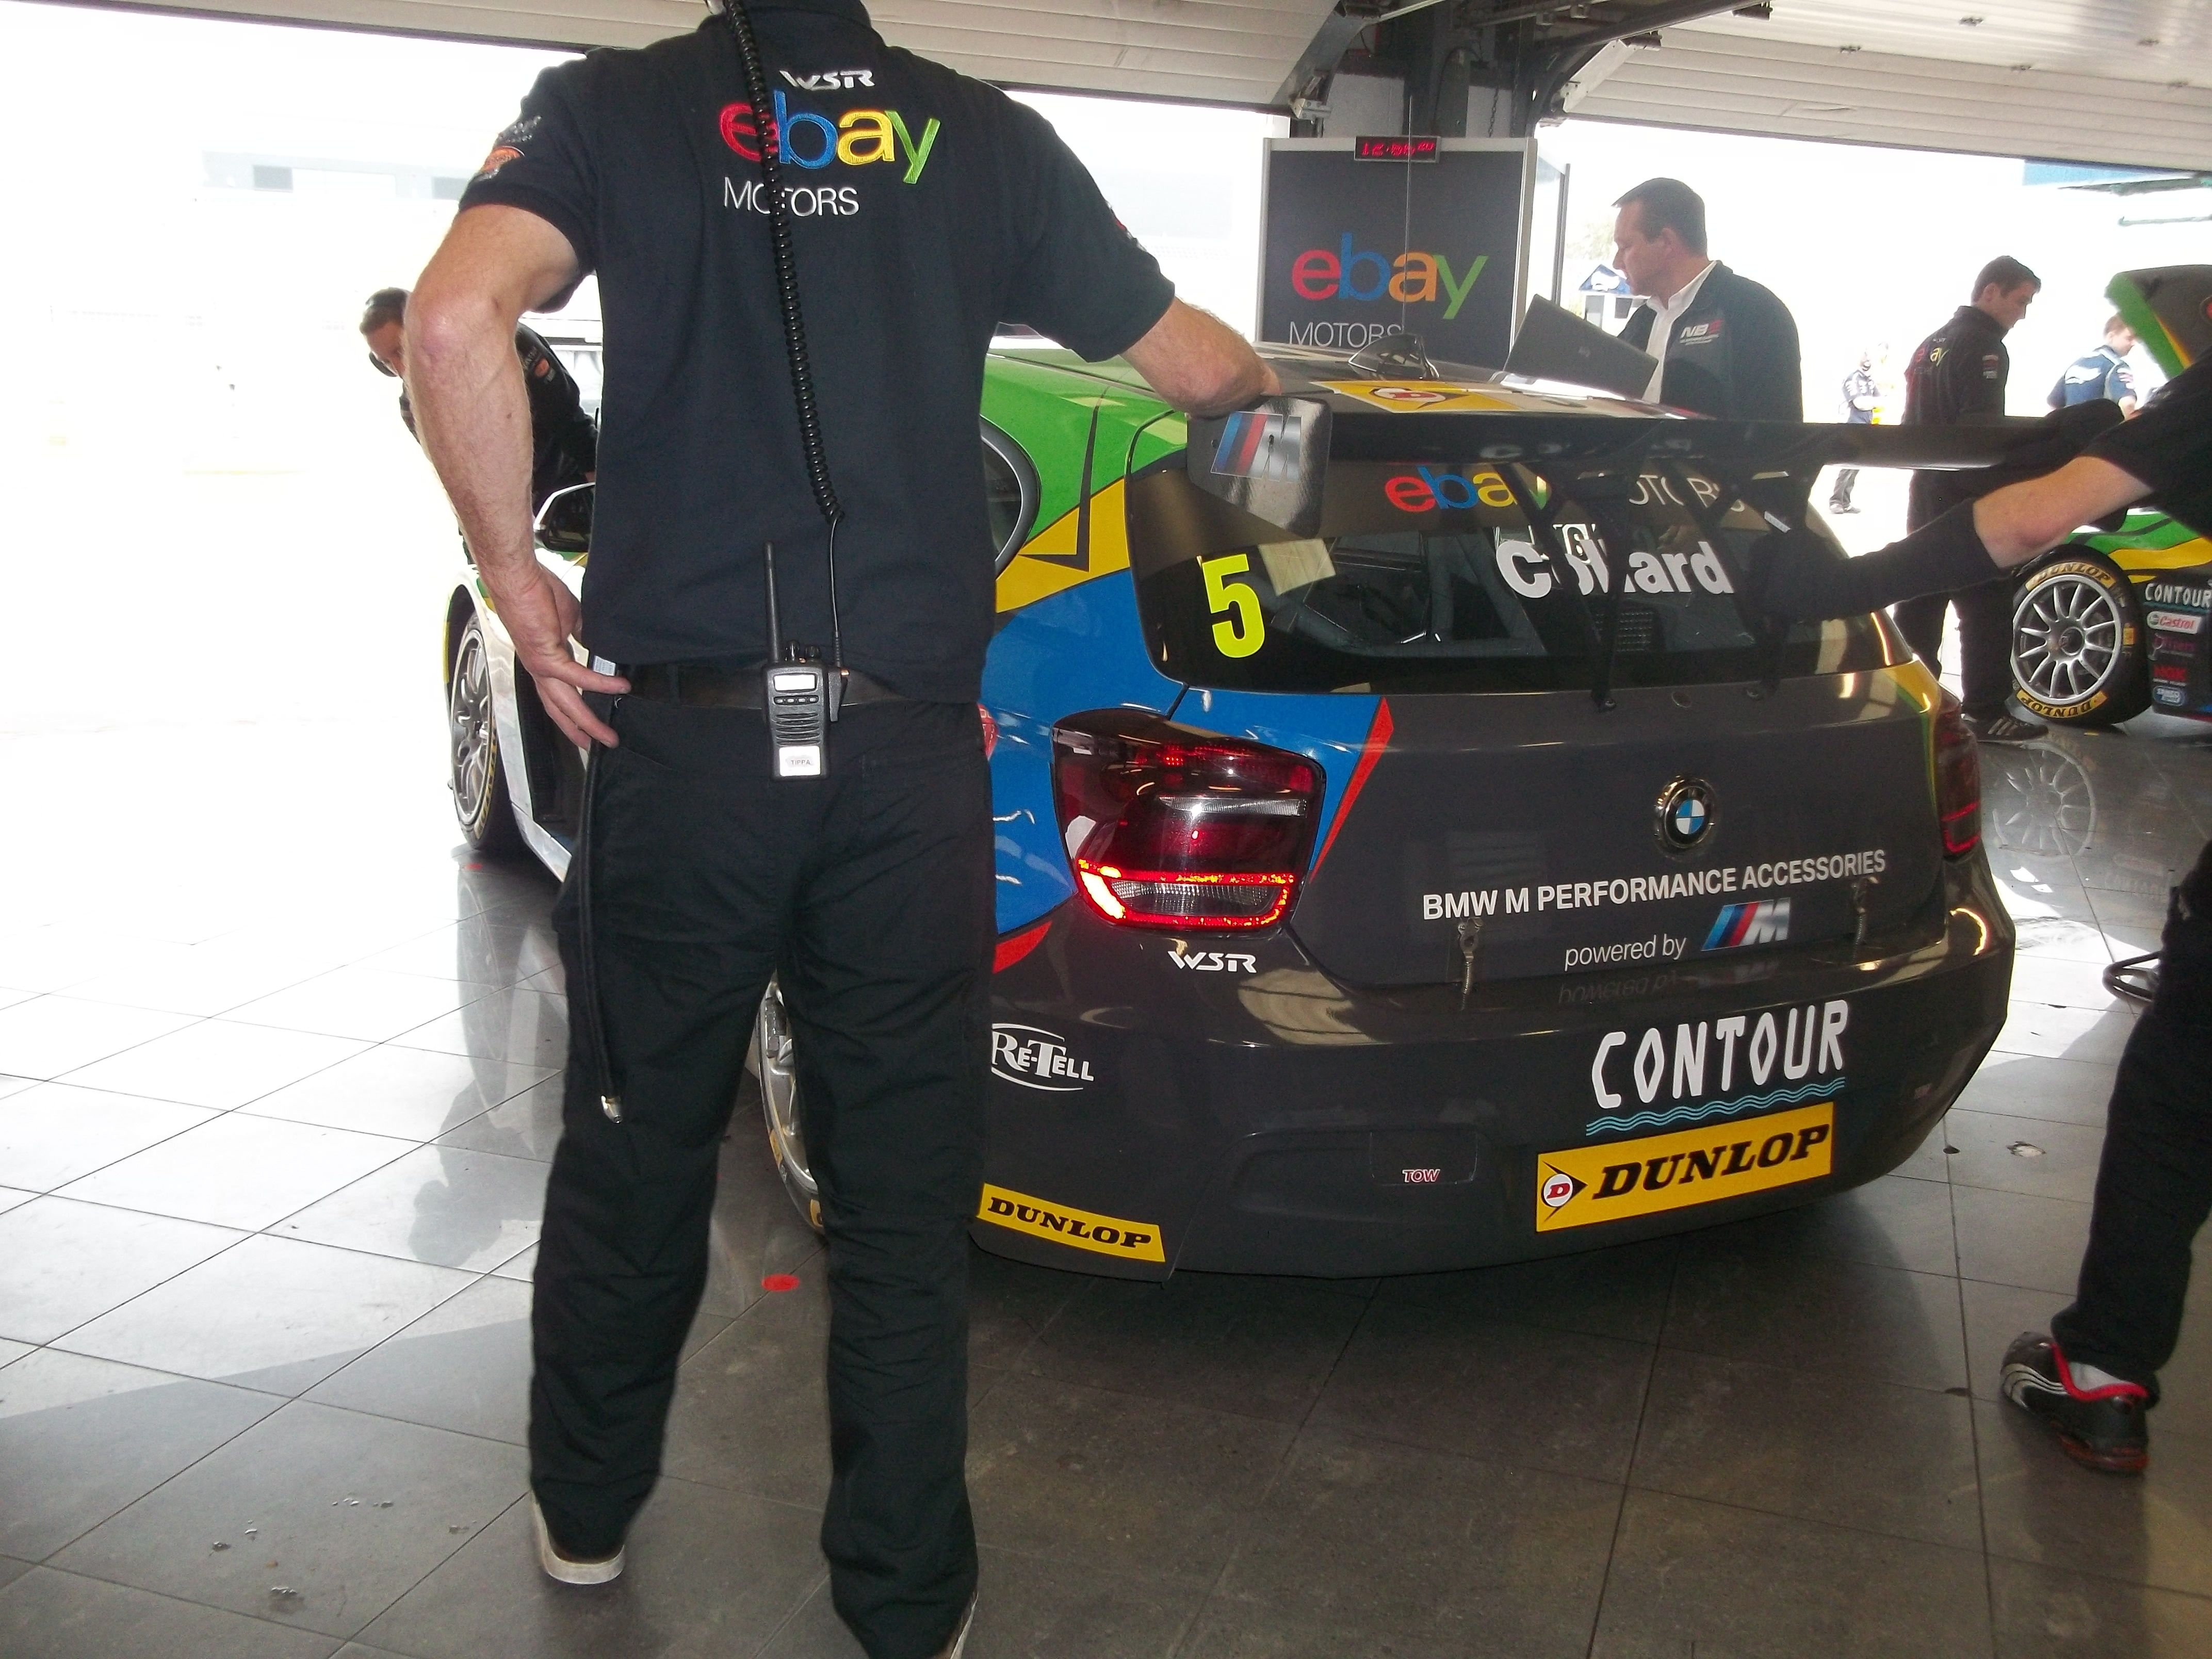 WSR / ebaynotors pit garage BTCC Silverstone 2014 | Events Attended ...